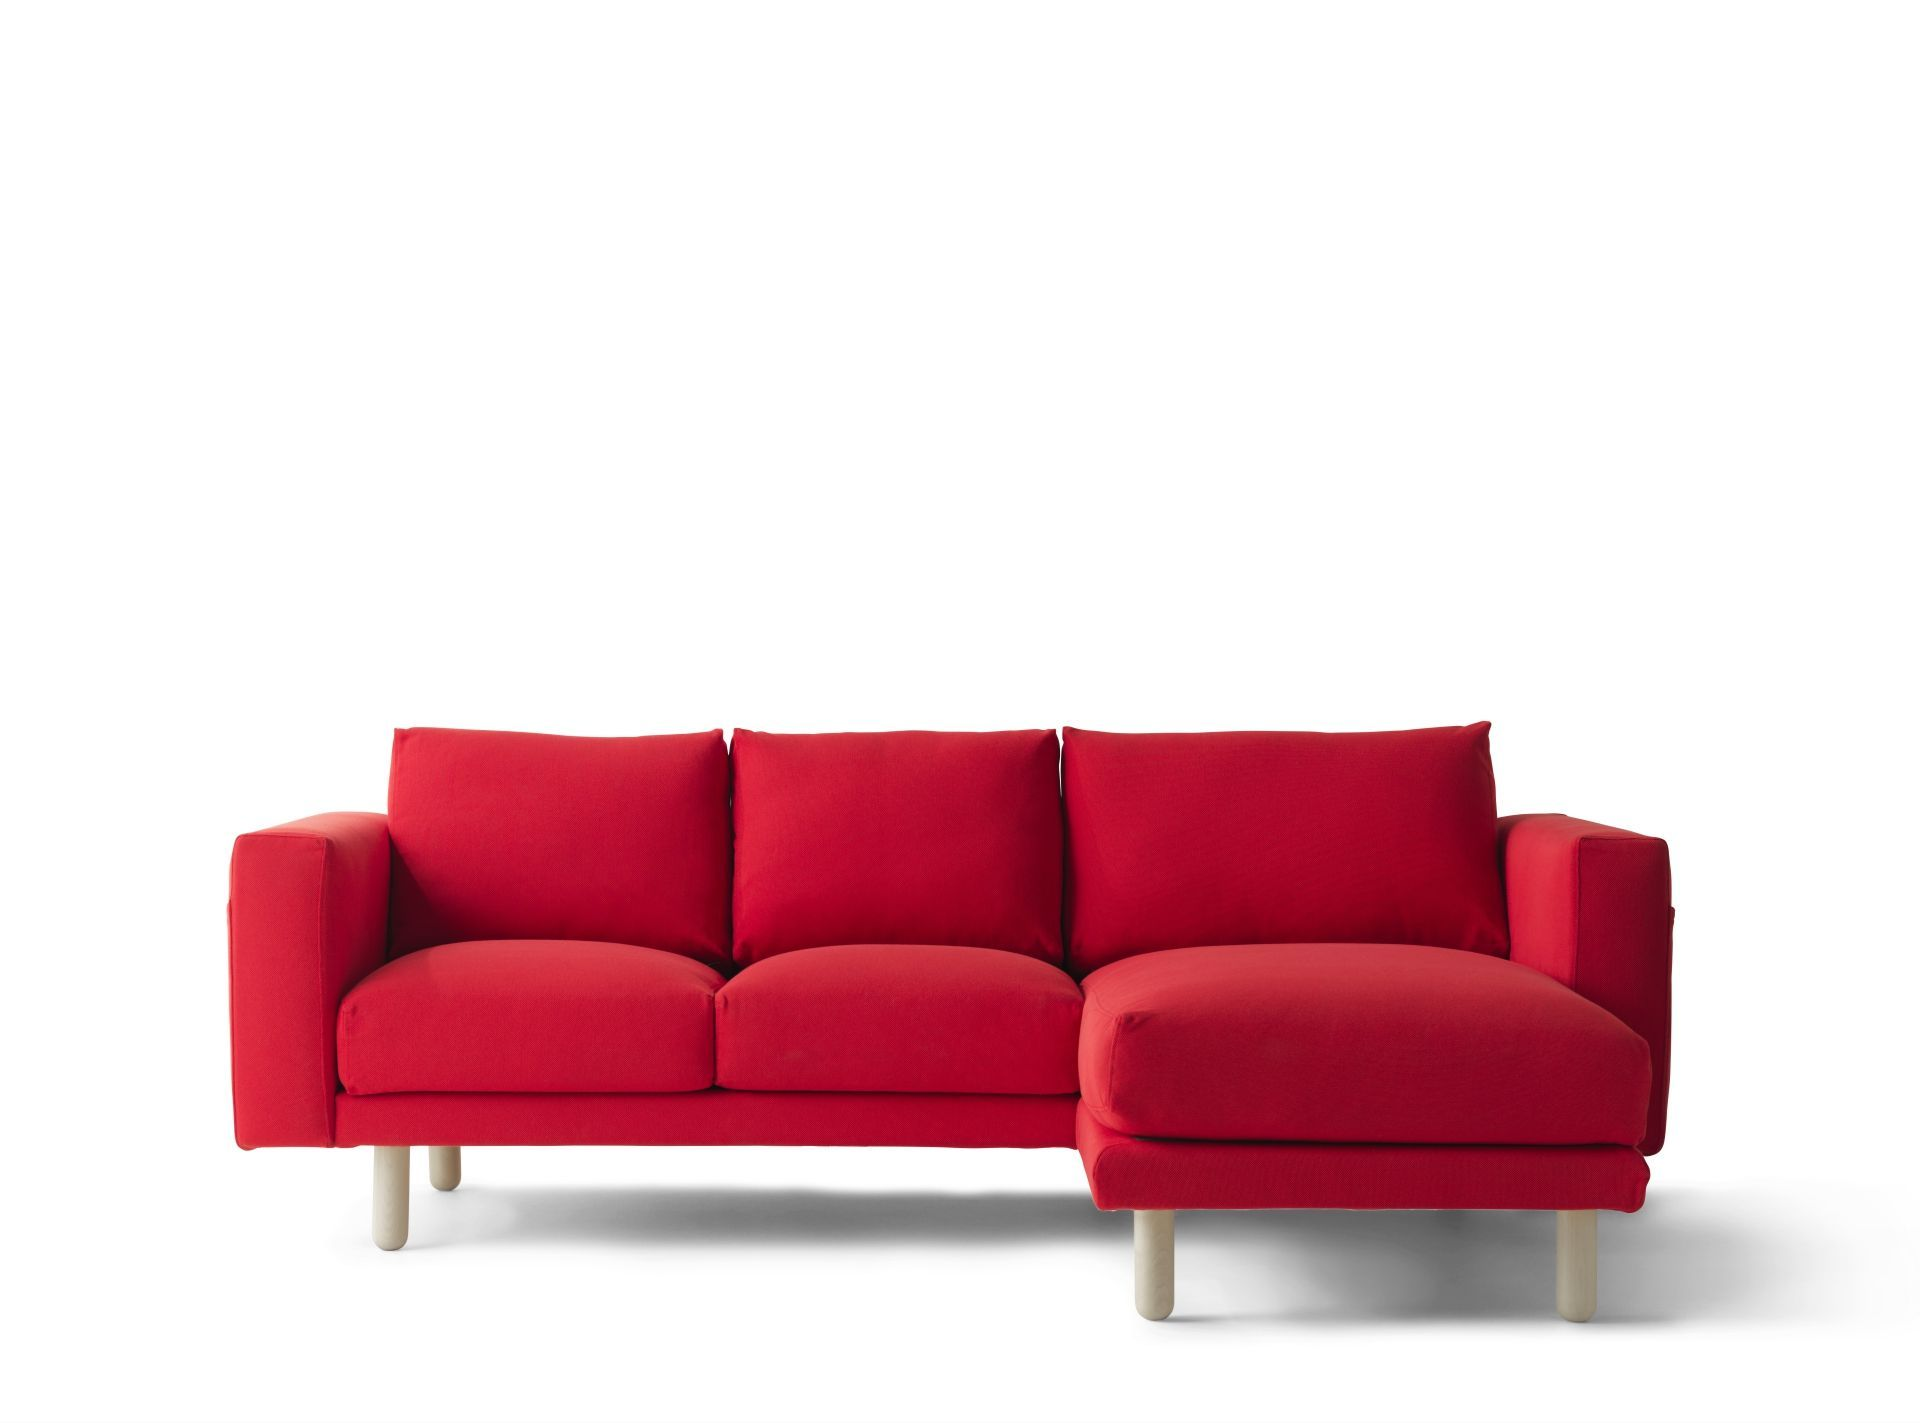 Sofa 2 Sitzer Ikea Norsborg 2-sitzer-sofa Mit Chaiselongue | #ikeacatalogue #new # 2017 #ikea #ikean, #2sitzersofa #chaiselongue #ikea #ikeacatalogue #ikean #mit #norsborg